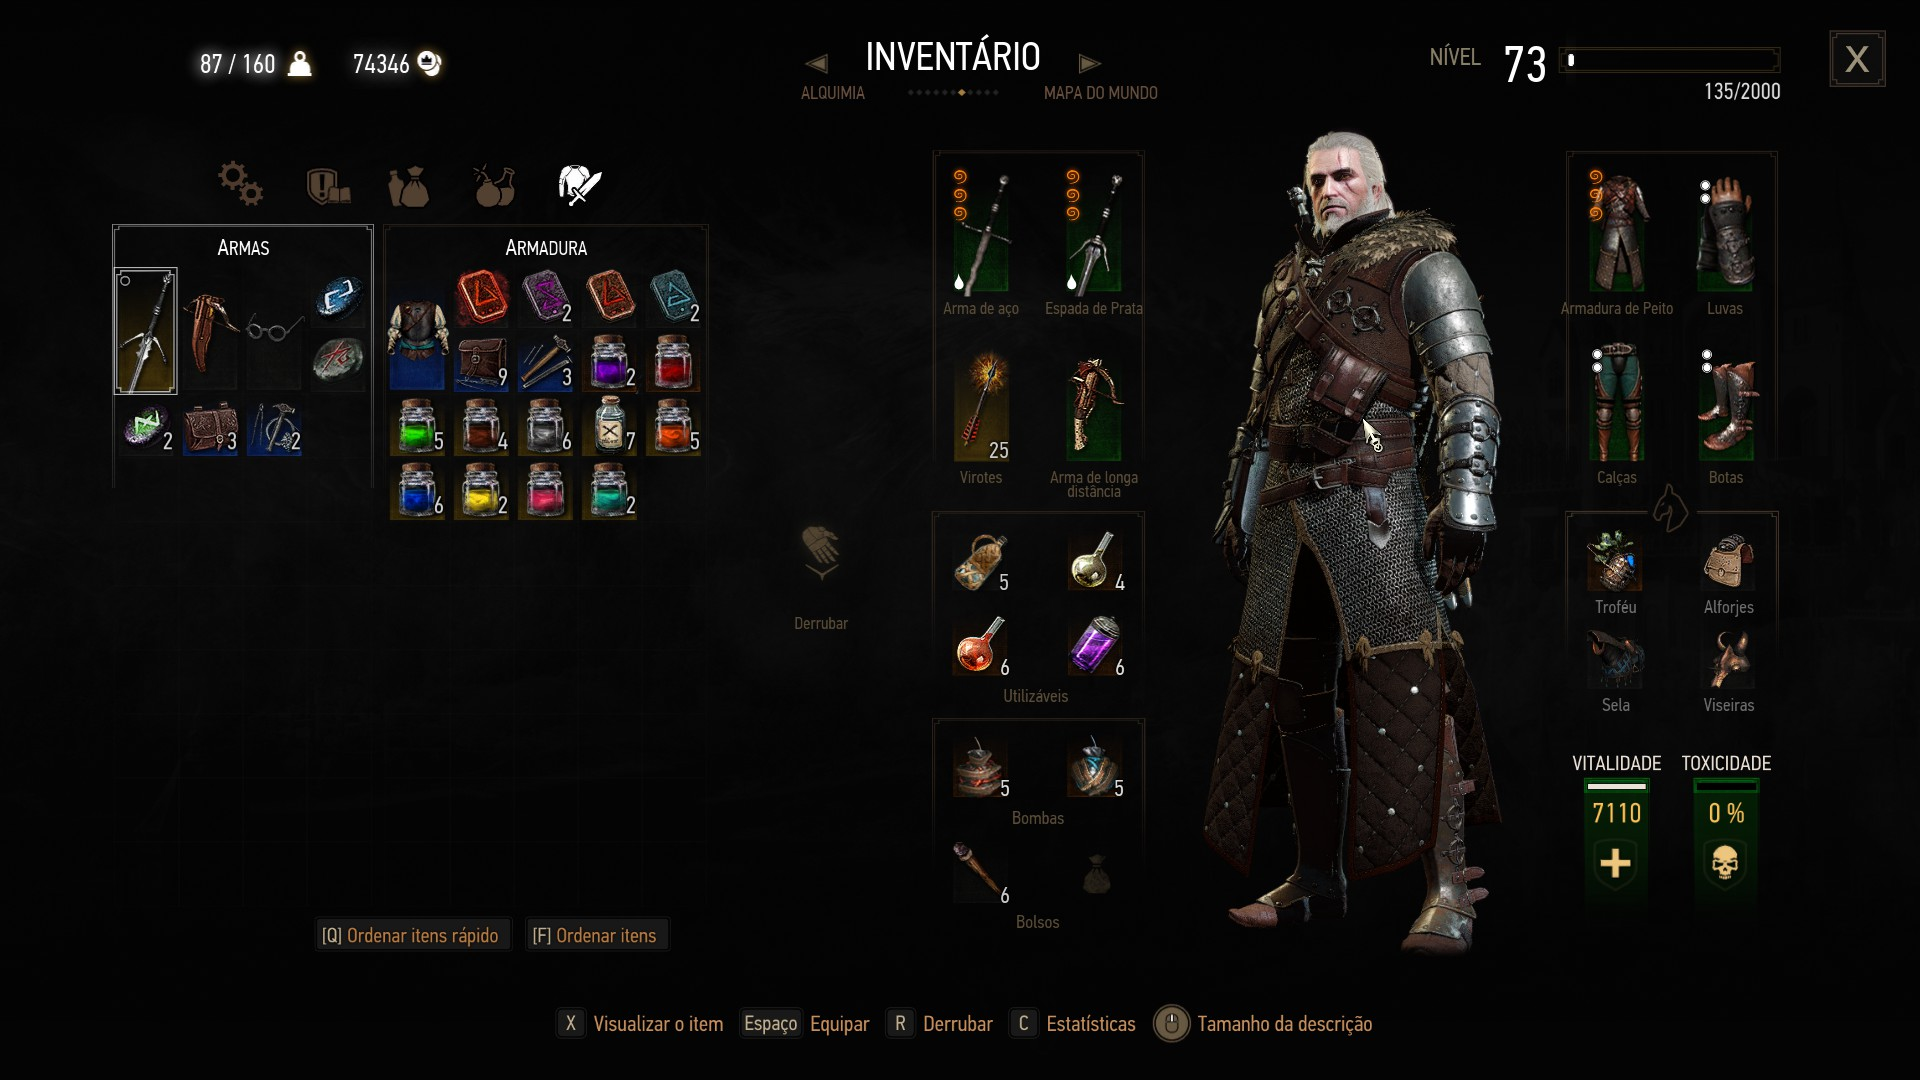 The Witcher 3: Wild Hunt | Game envelheceu com louvor e glória